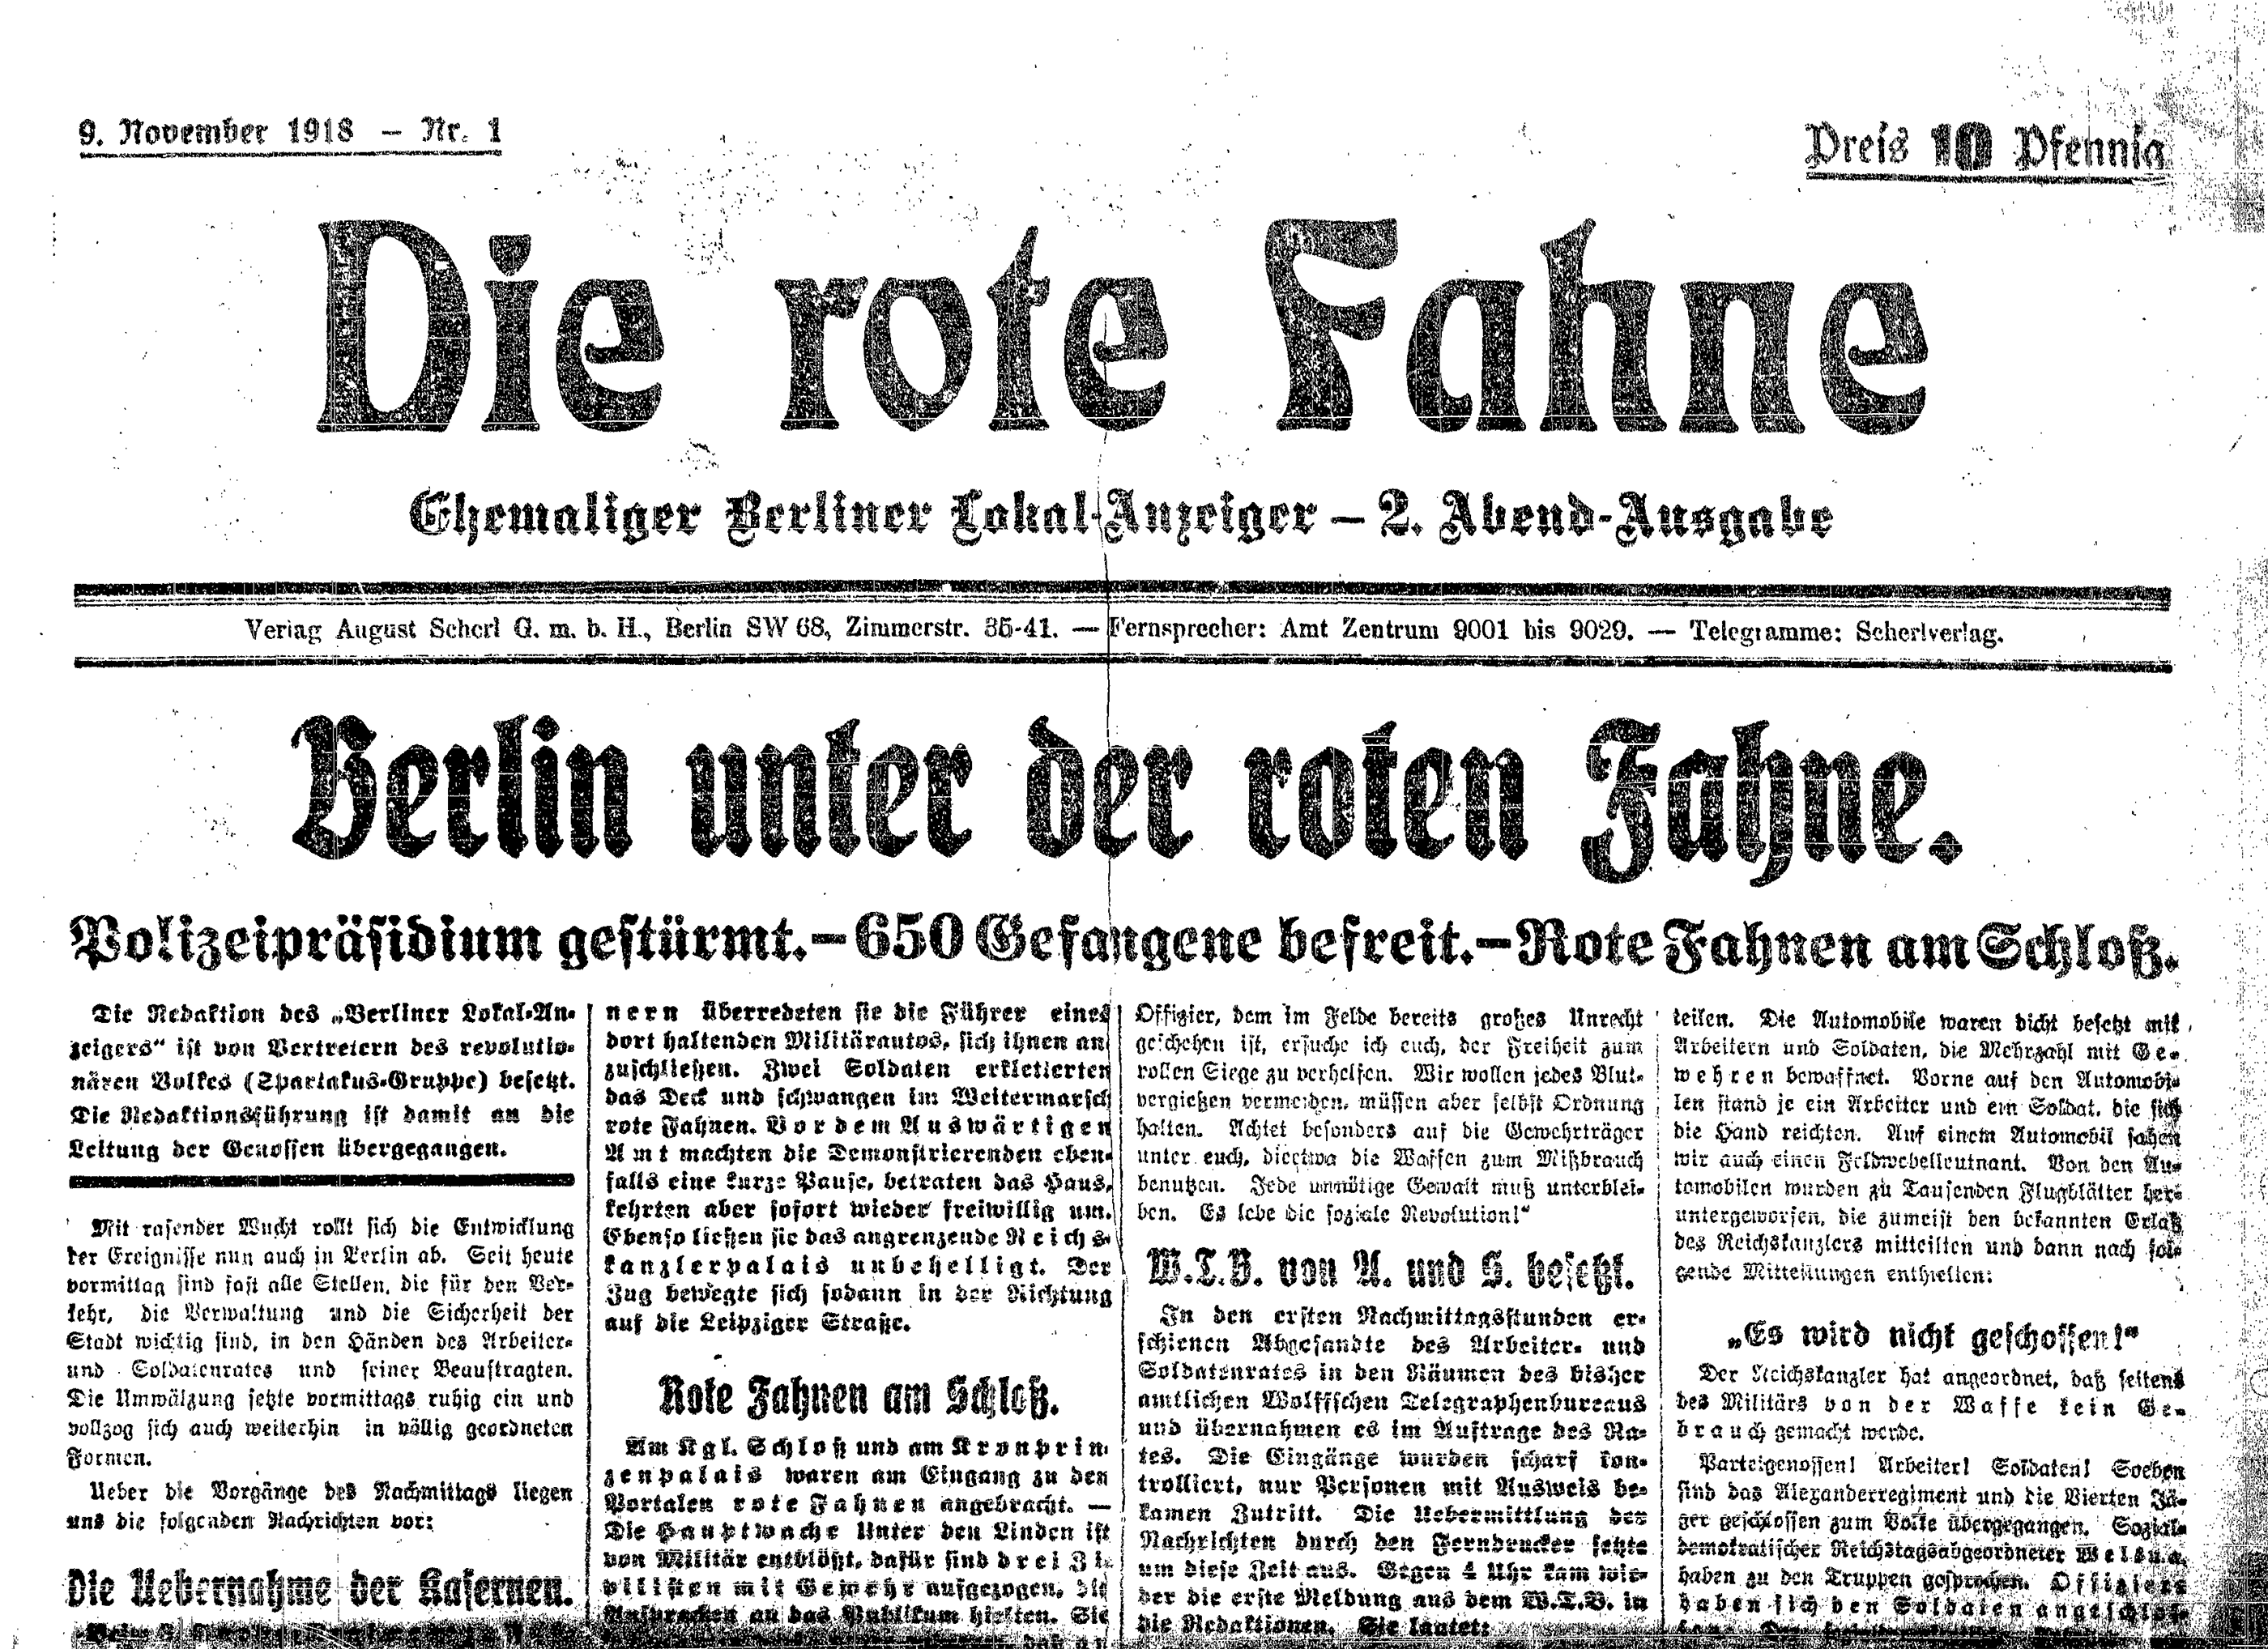 Die Rote Fahne, #1 (9 Nov 1918) and #16 (16 Jan 1919) - Fonts In Use